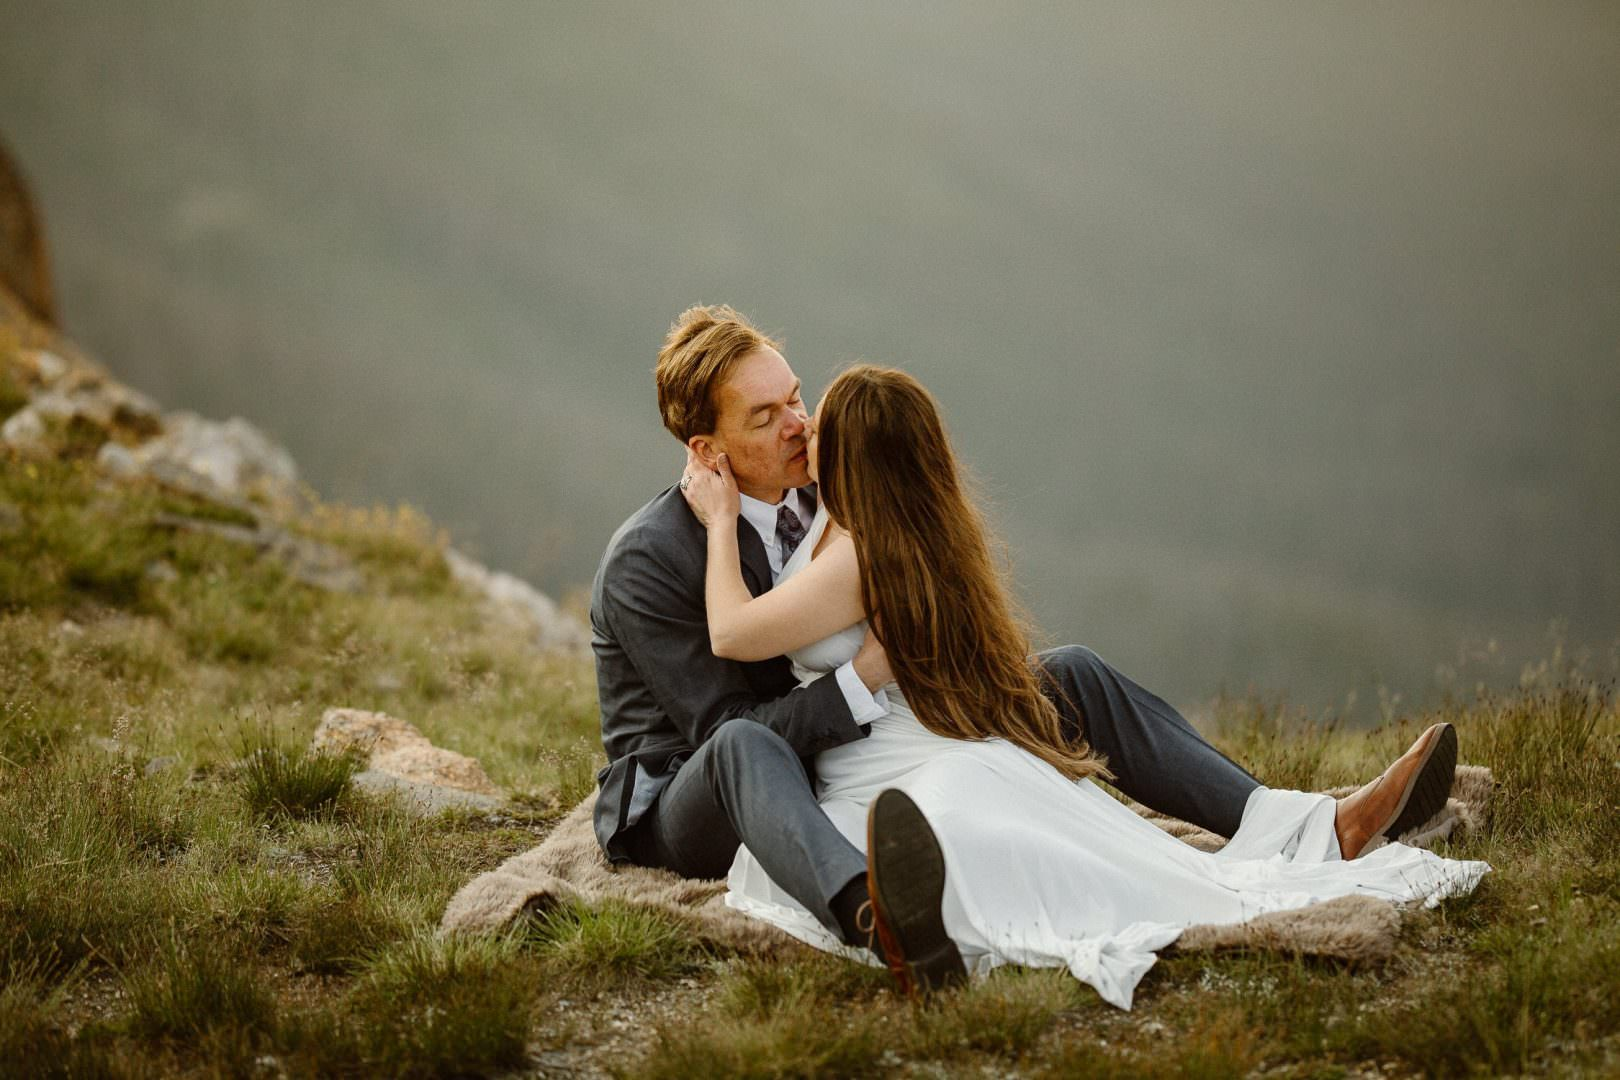 Colorado Intimate Weddings and Adventure Elopement Photographer | Rocky Mountain National Park Wedding Photographer | Adventure